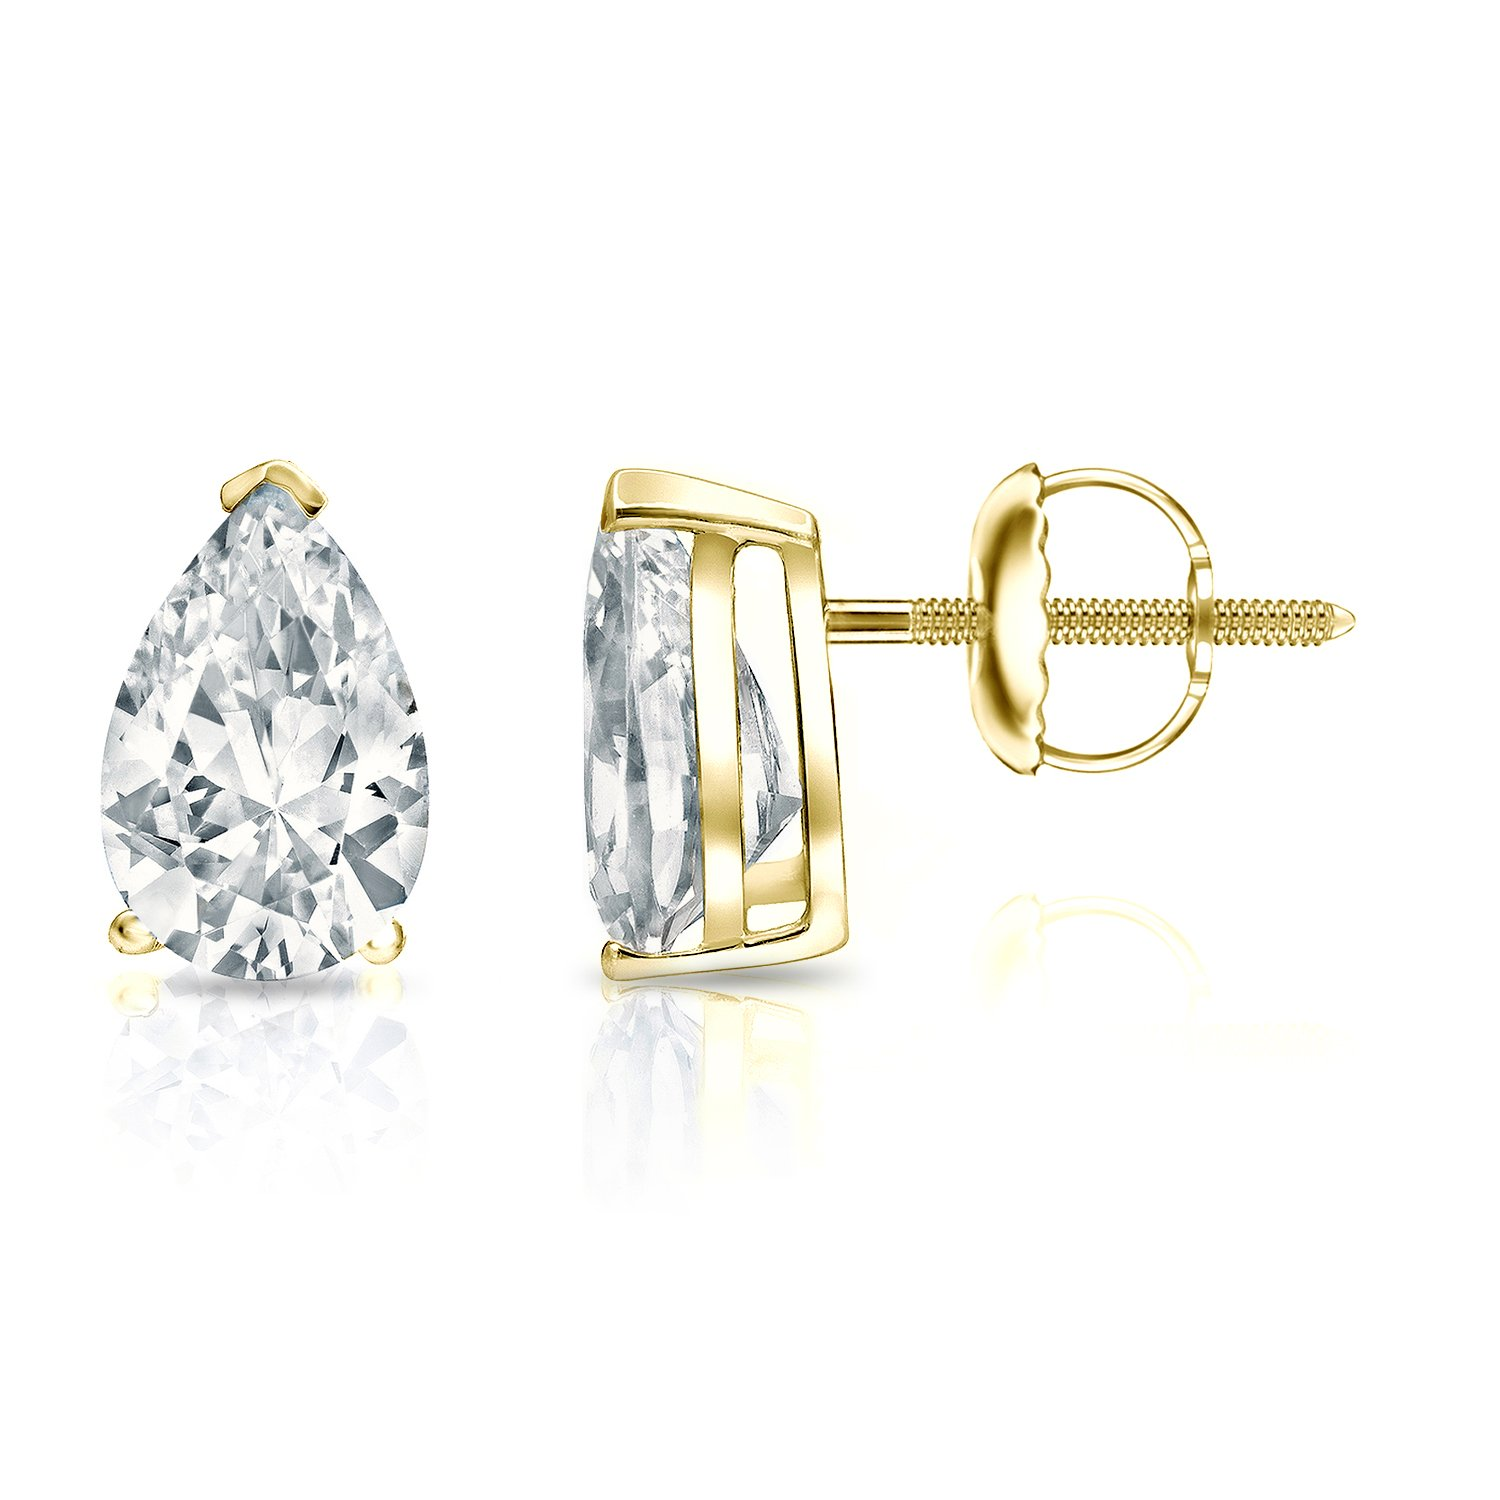 14k Yellow Gold Pear-cut Diamond SIMULANT CZ STUD Earrings V-End Prong(2ct,Excellent Quality)